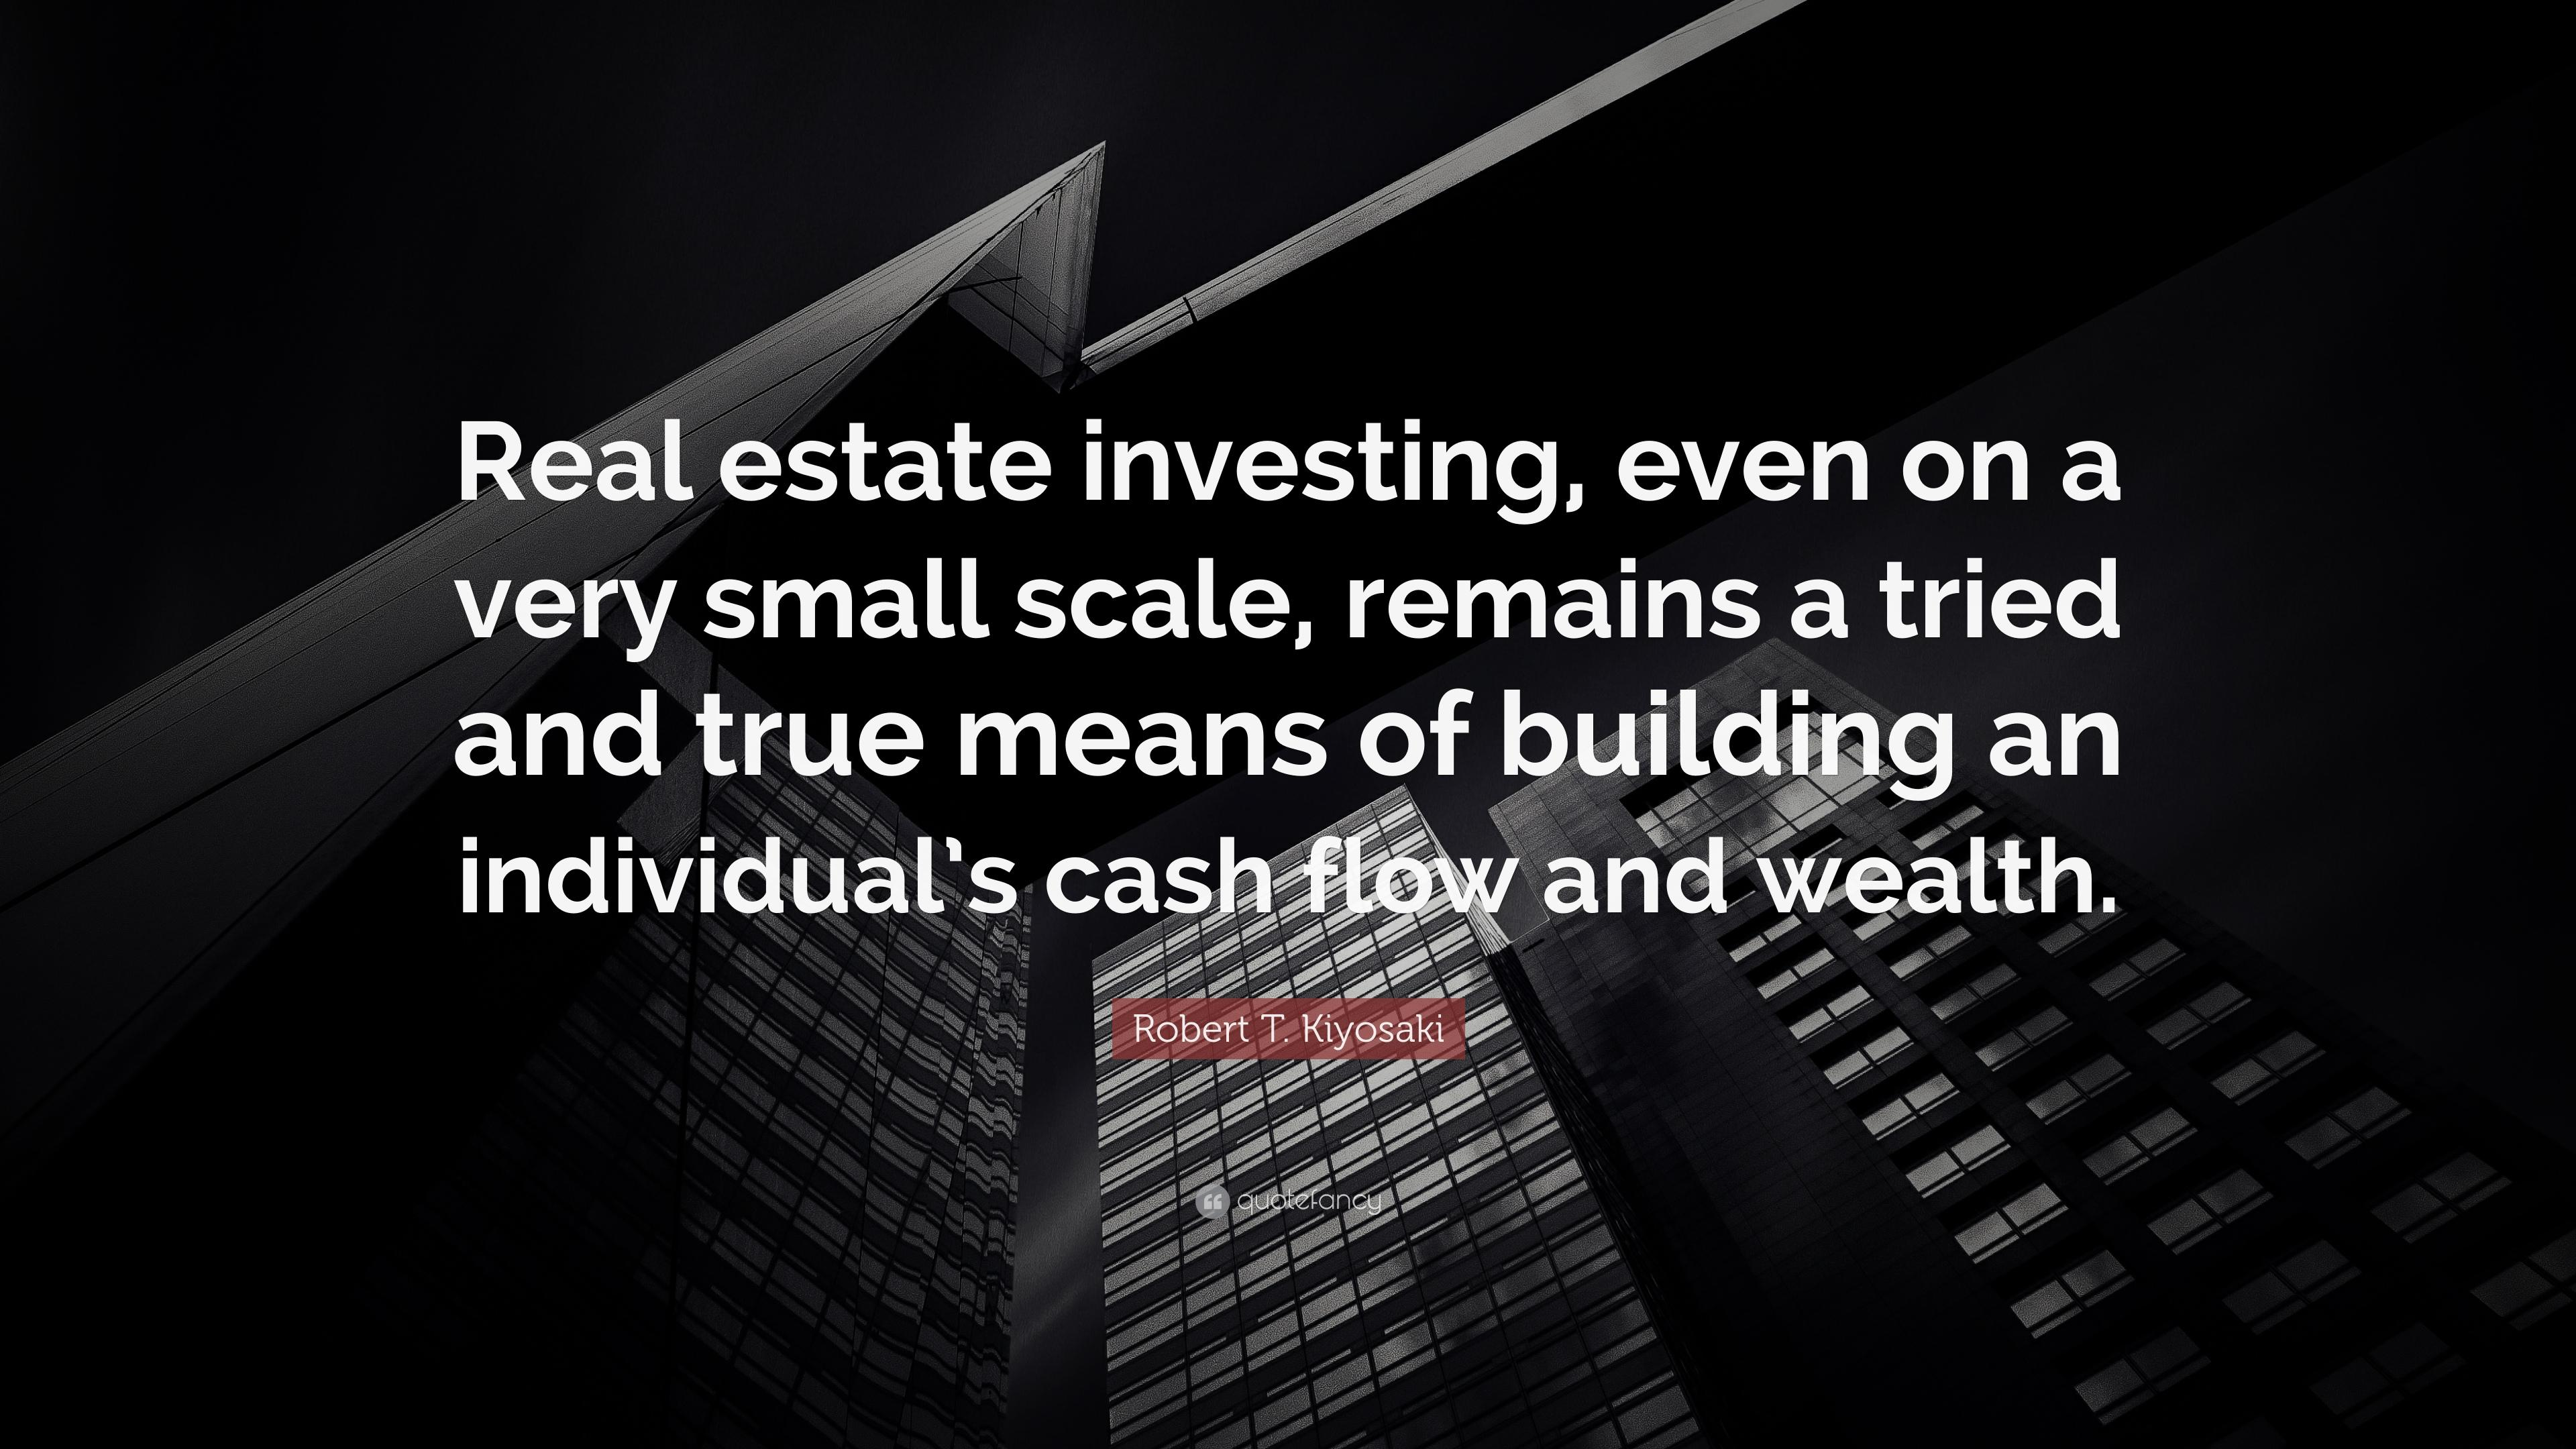 FIRE YOUR BOSS WITH REAL ESTATE CASH FLOW